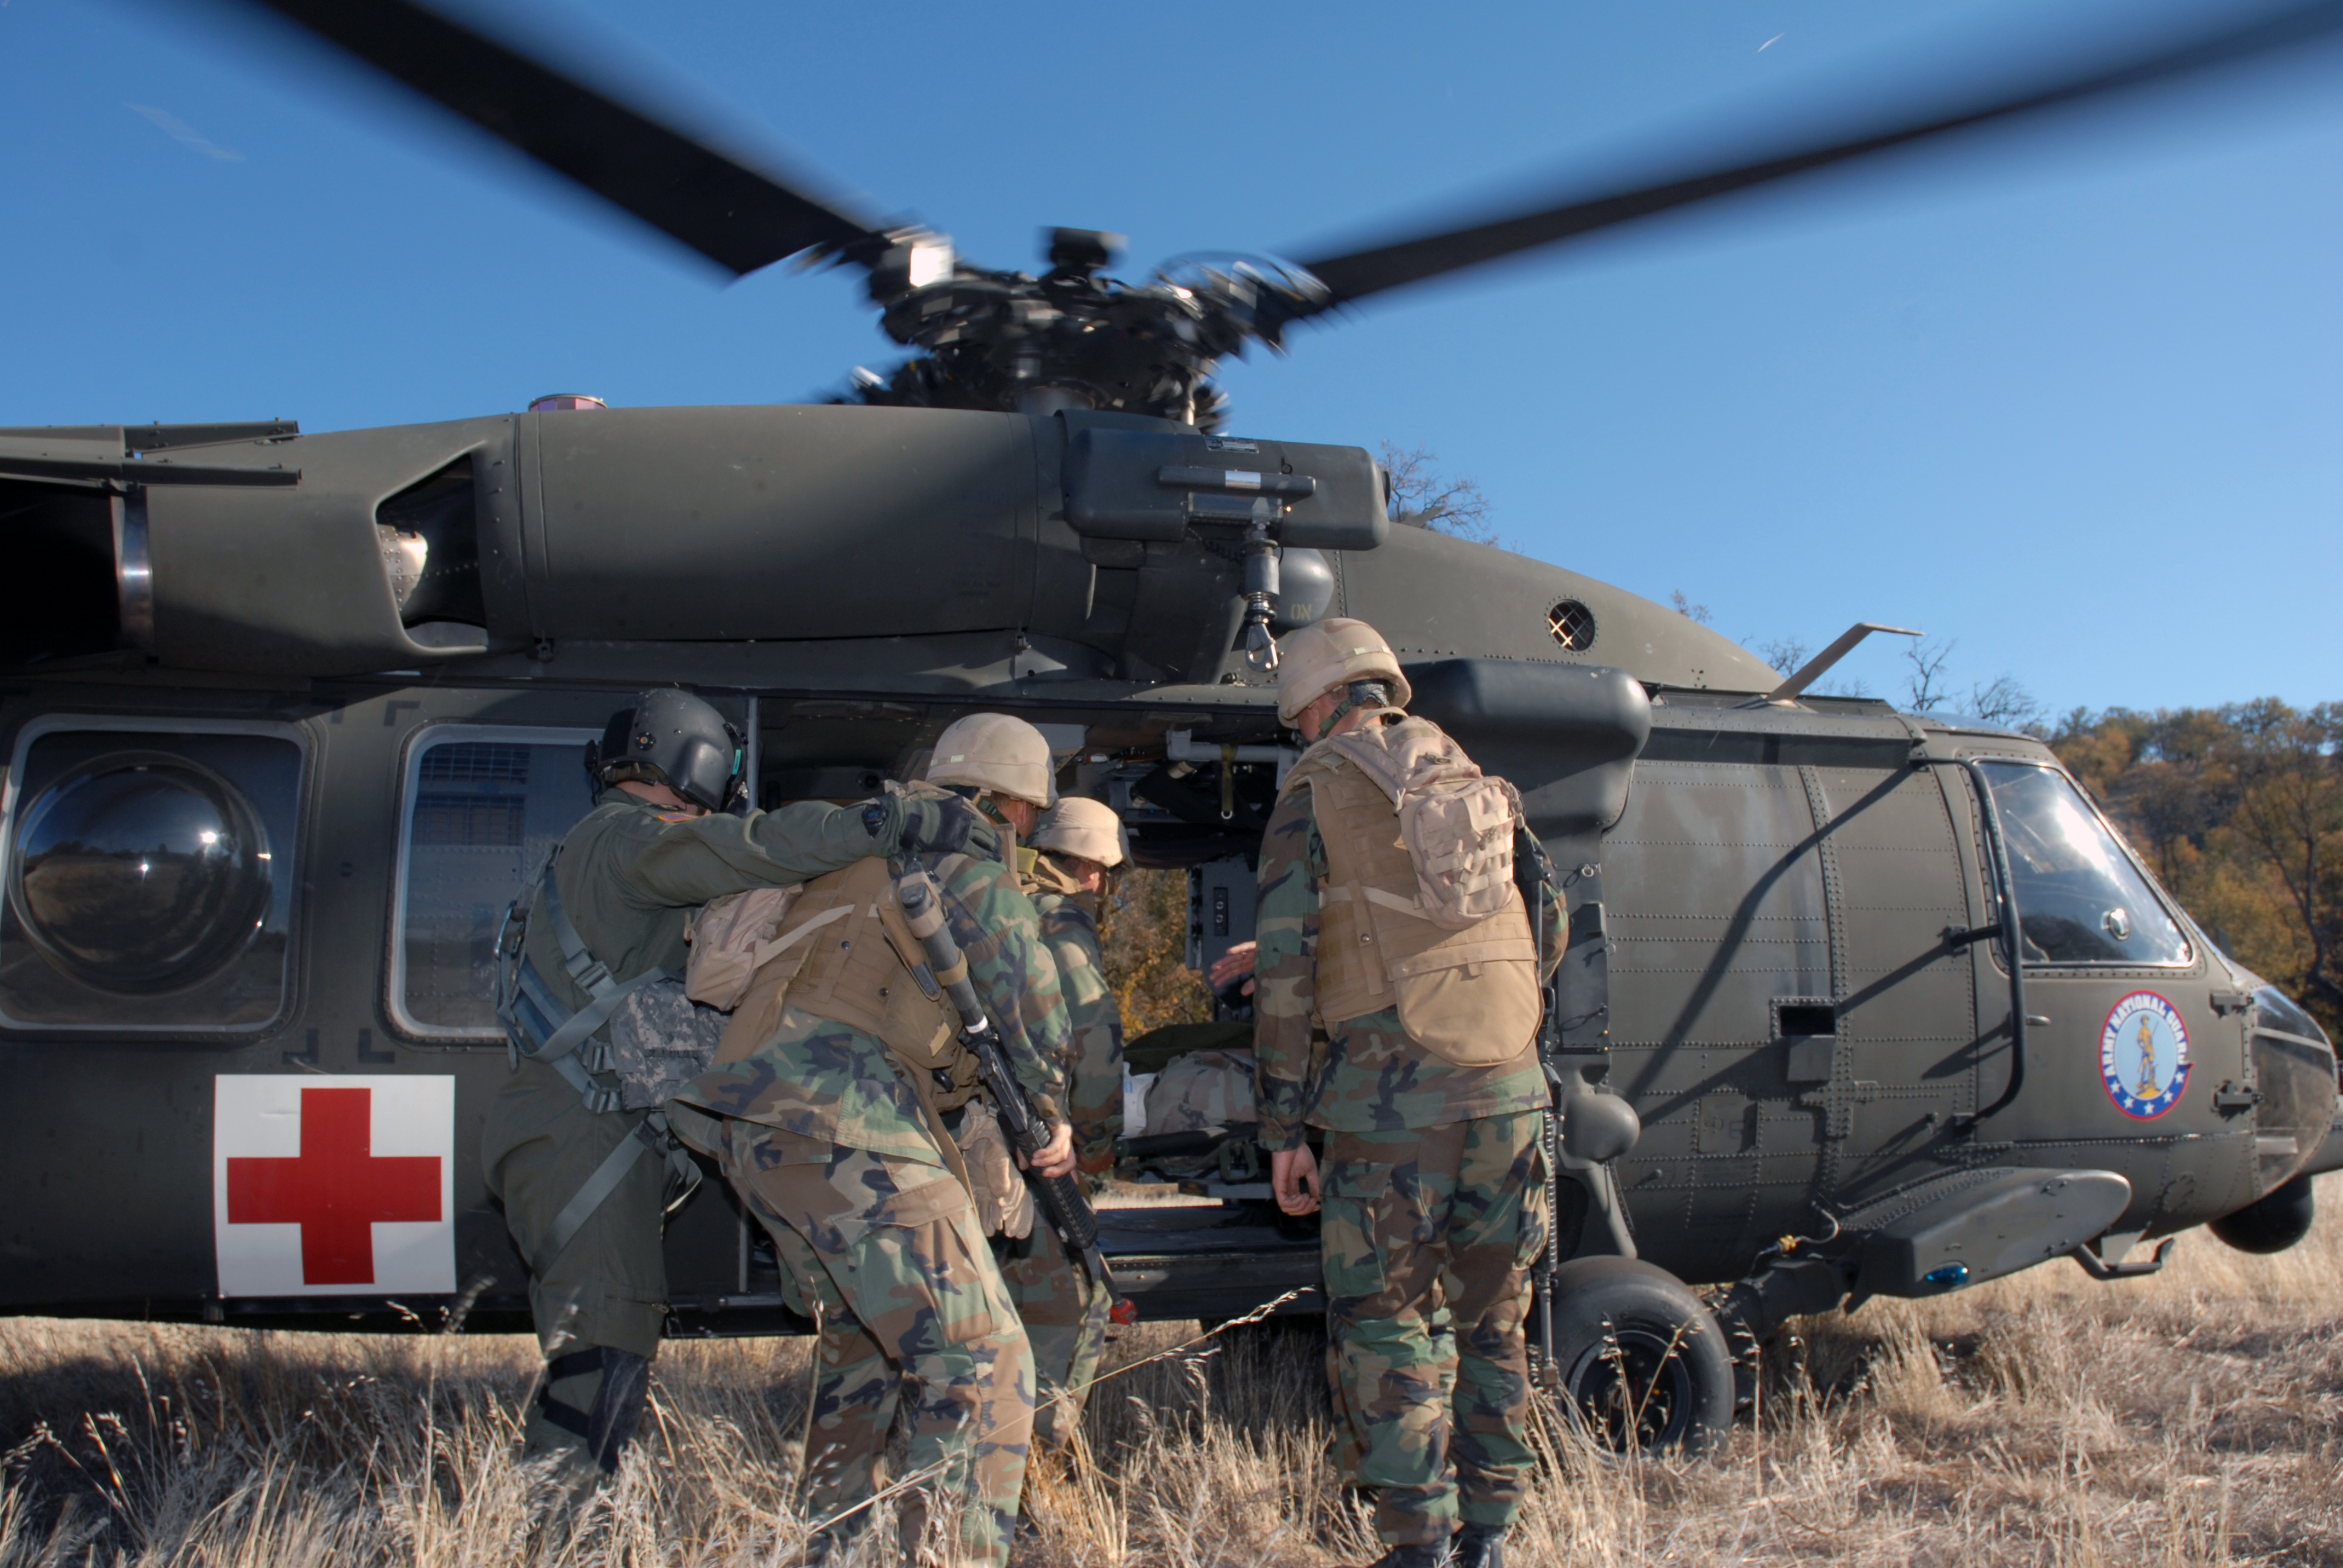 air force gunship with File Us Navy 071211 N 9623r 003 Seabees From Naval Mobile Construction Battalion  Nmcb  17 Load A Patient Into A Uh 60 Blackhawk Medical Evacuation Helicopter on 493355334164120334 further  moreover Eurocopter Tiger Airbus Helicopters Tiger Attack Helicopter 1441 moreover File US Navy 071211 N 9623R 003 Seabees from Naval Mobile Construction Battalion  NMCB  17 load a patient into a UH 60 Blackhawk medical evacuation helicopter likewise File U S  Air Force Airman Vanessa Dobos  the first female aerial gunner.